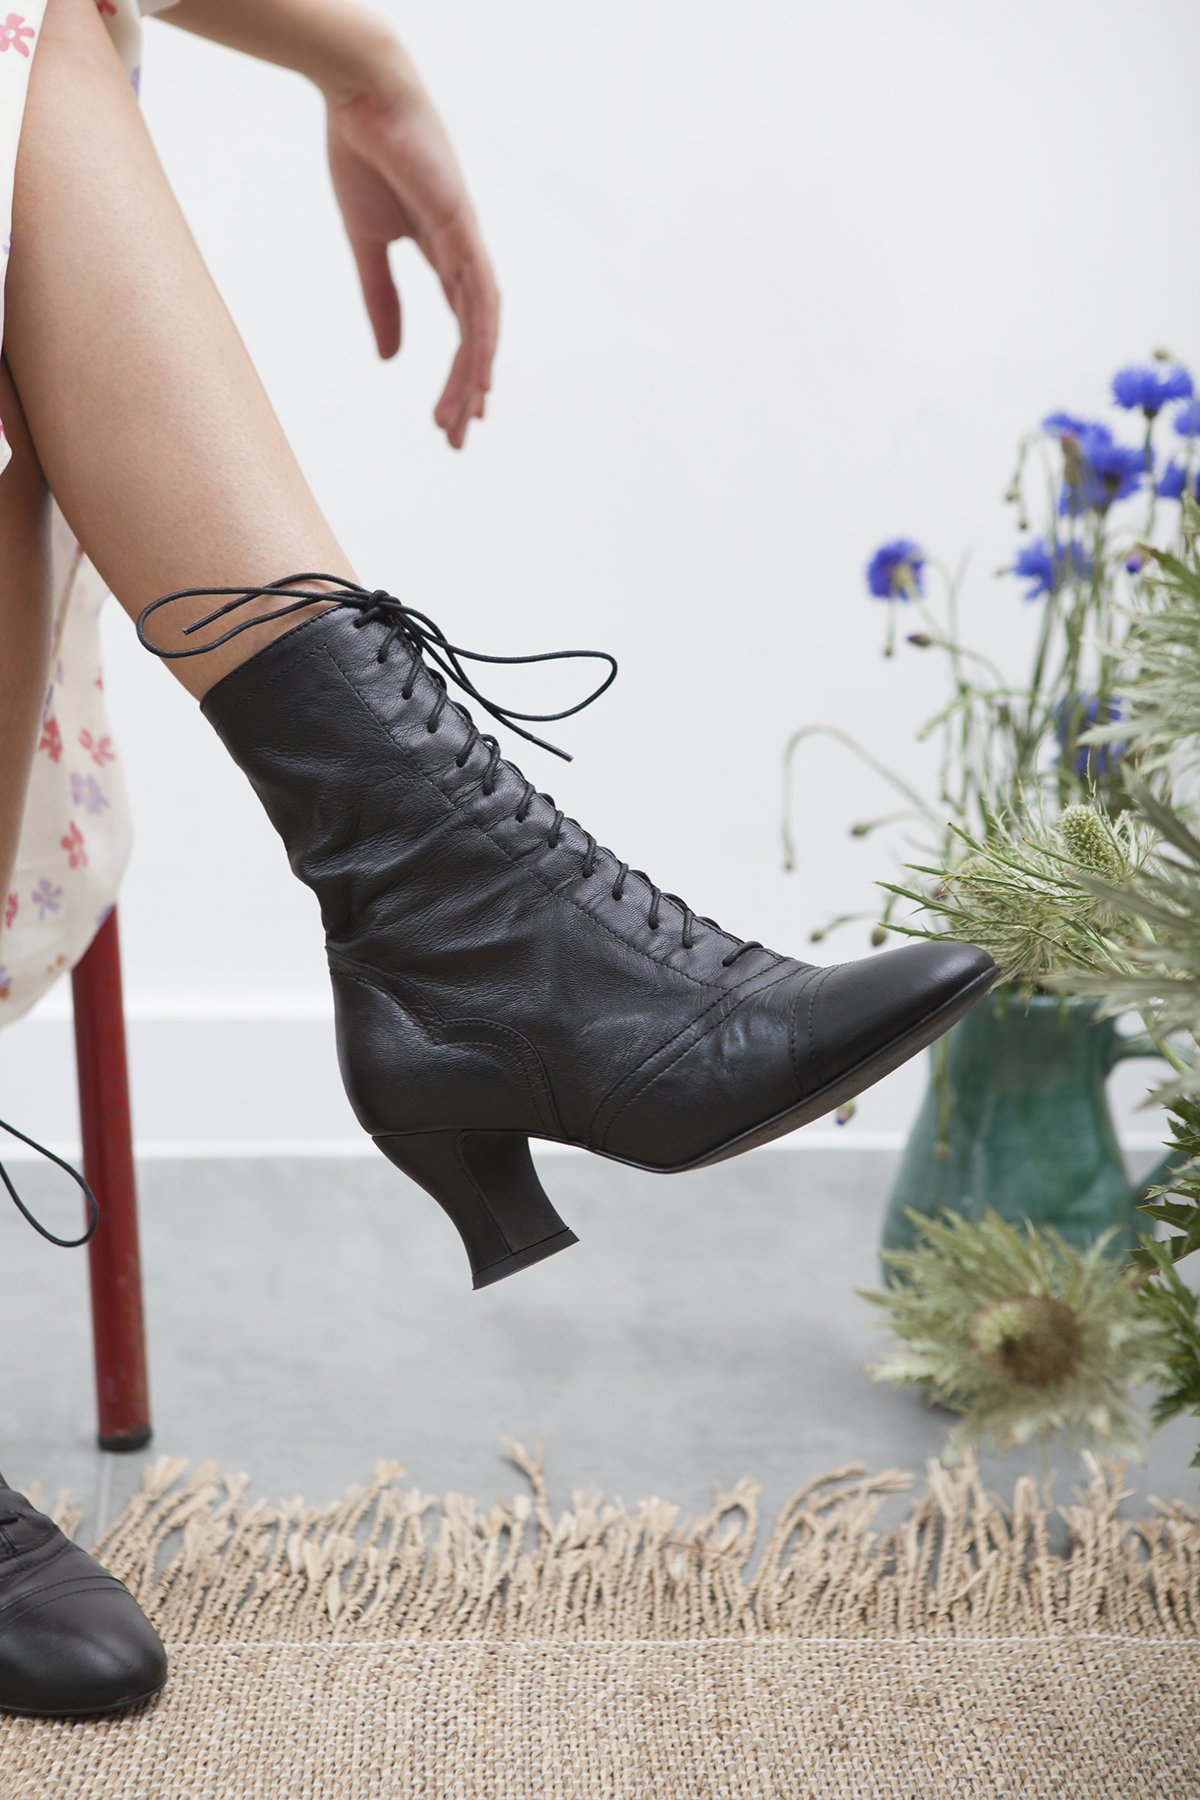 Miss L Fire Vintage boot in black leather